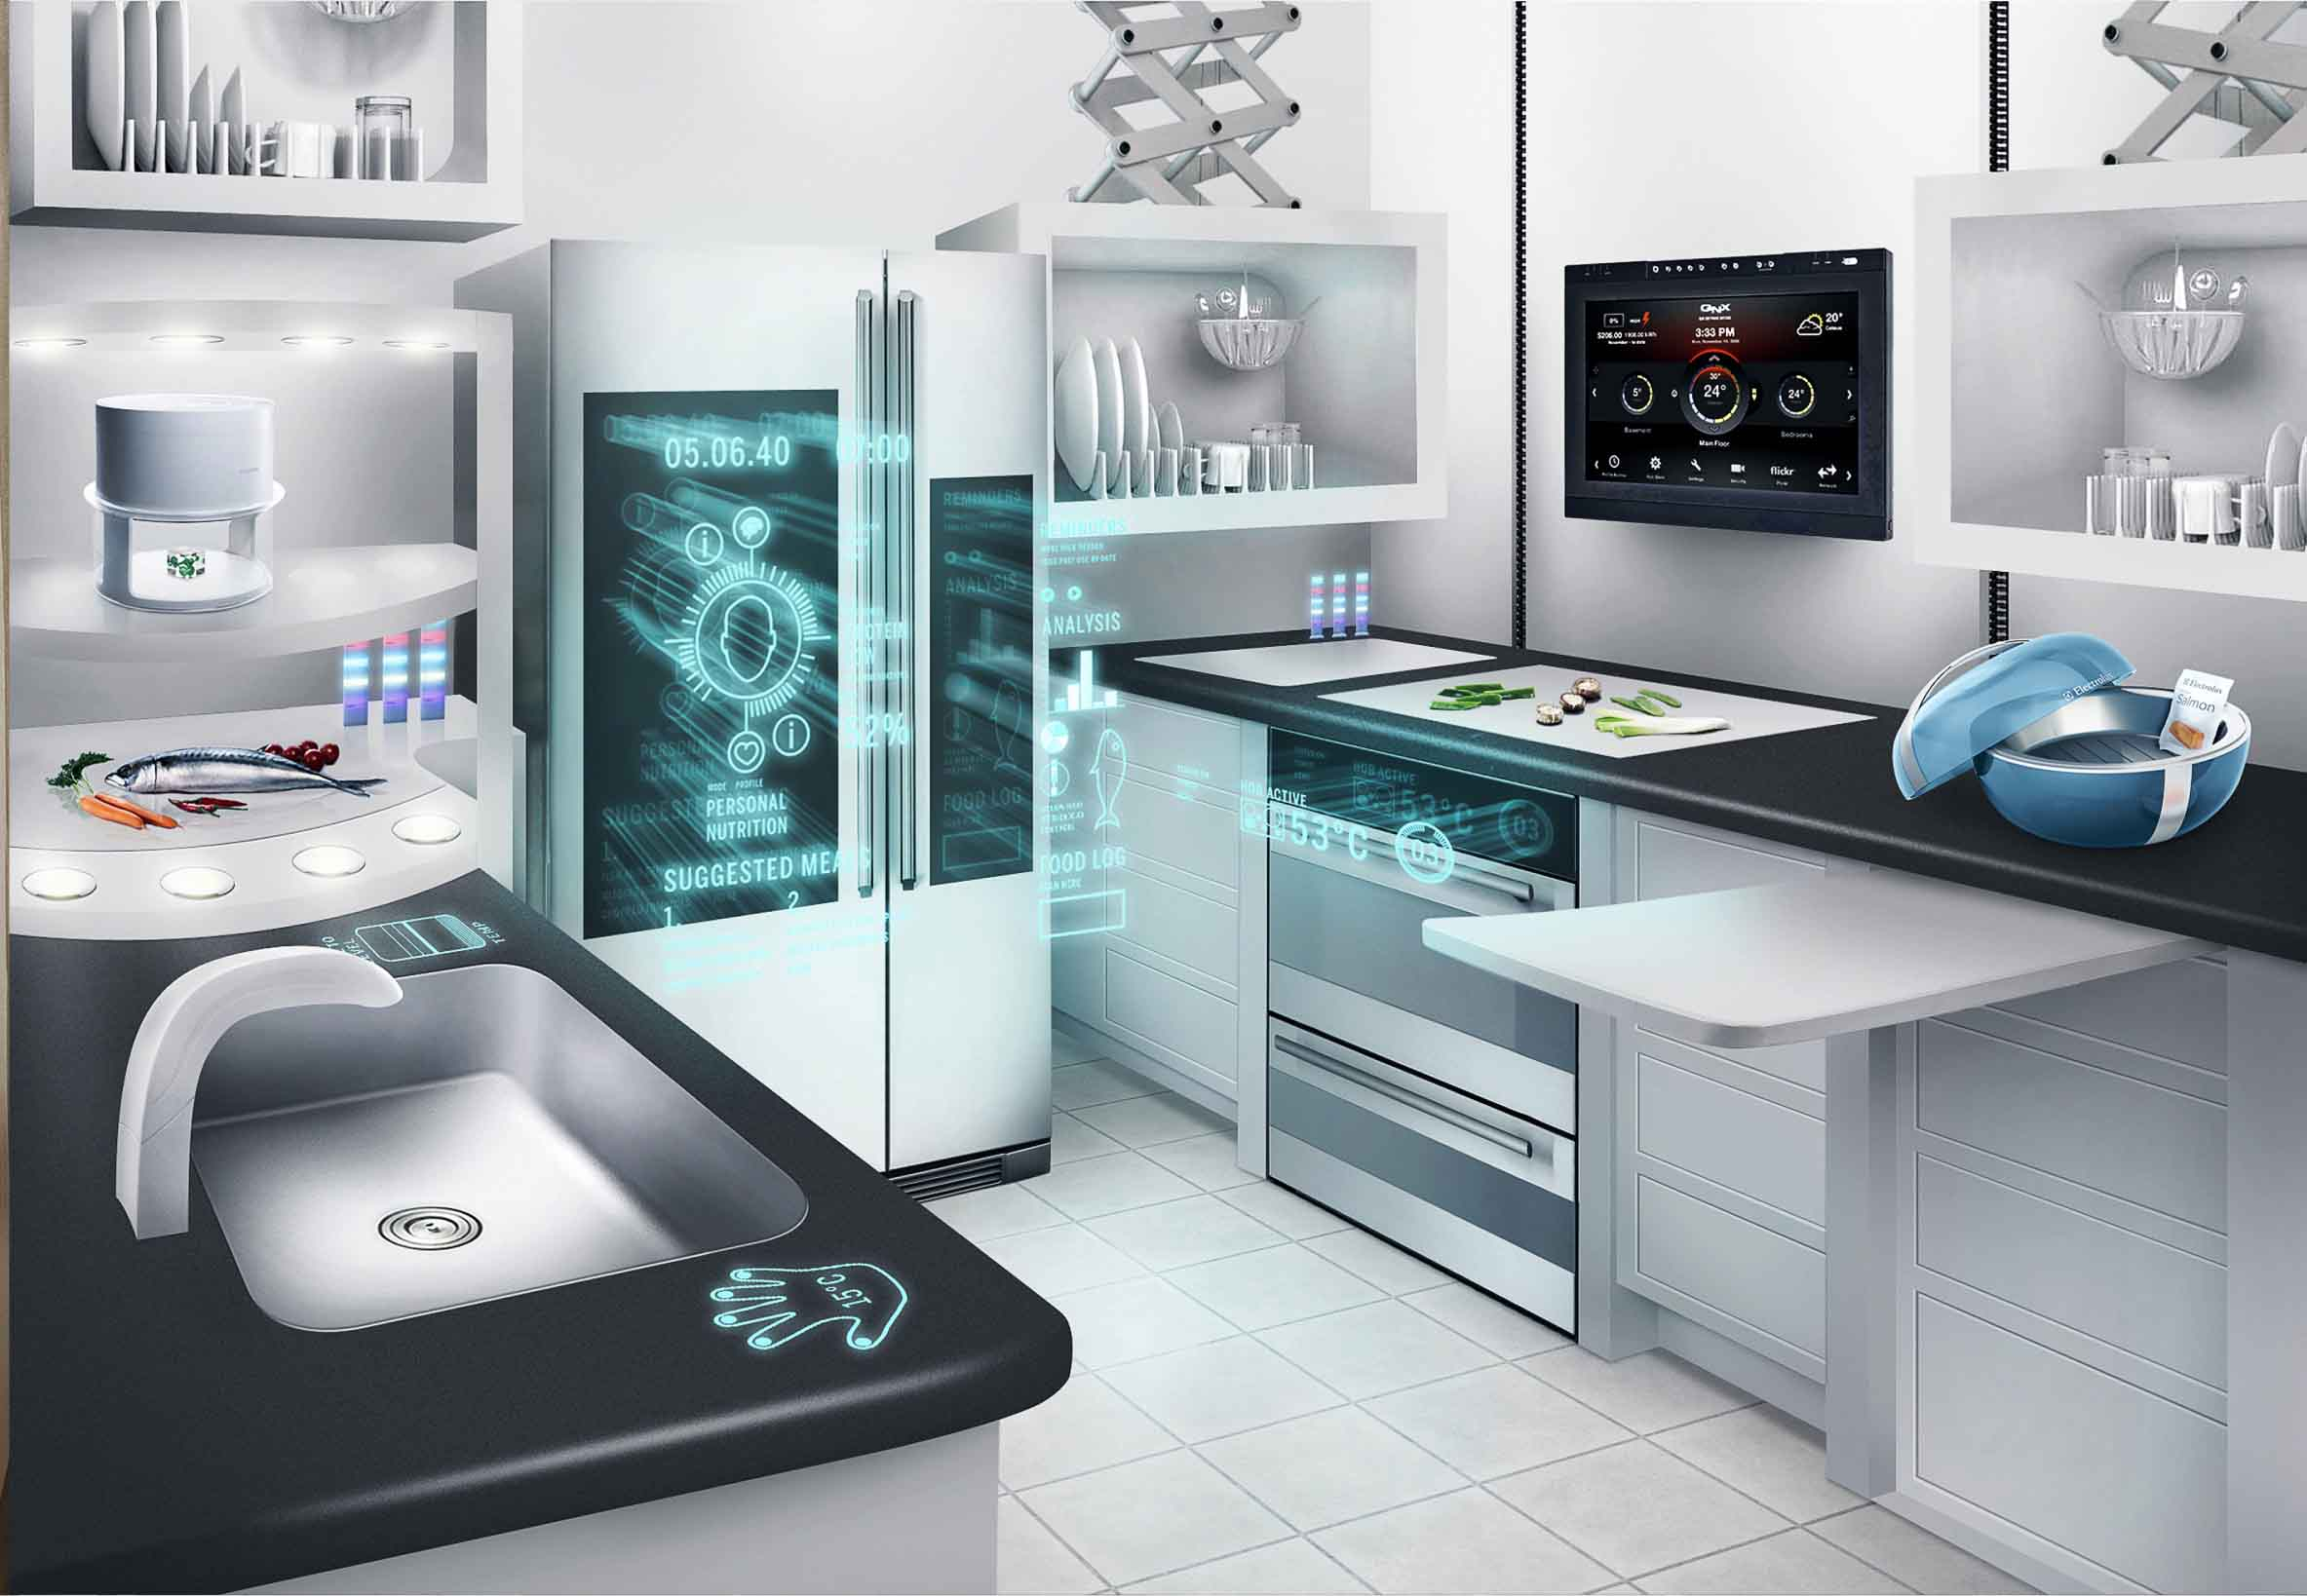 | Thereu0027s No Place Like Home: 5G Heralds The Rise Of Smart Home Appliances.  U201c